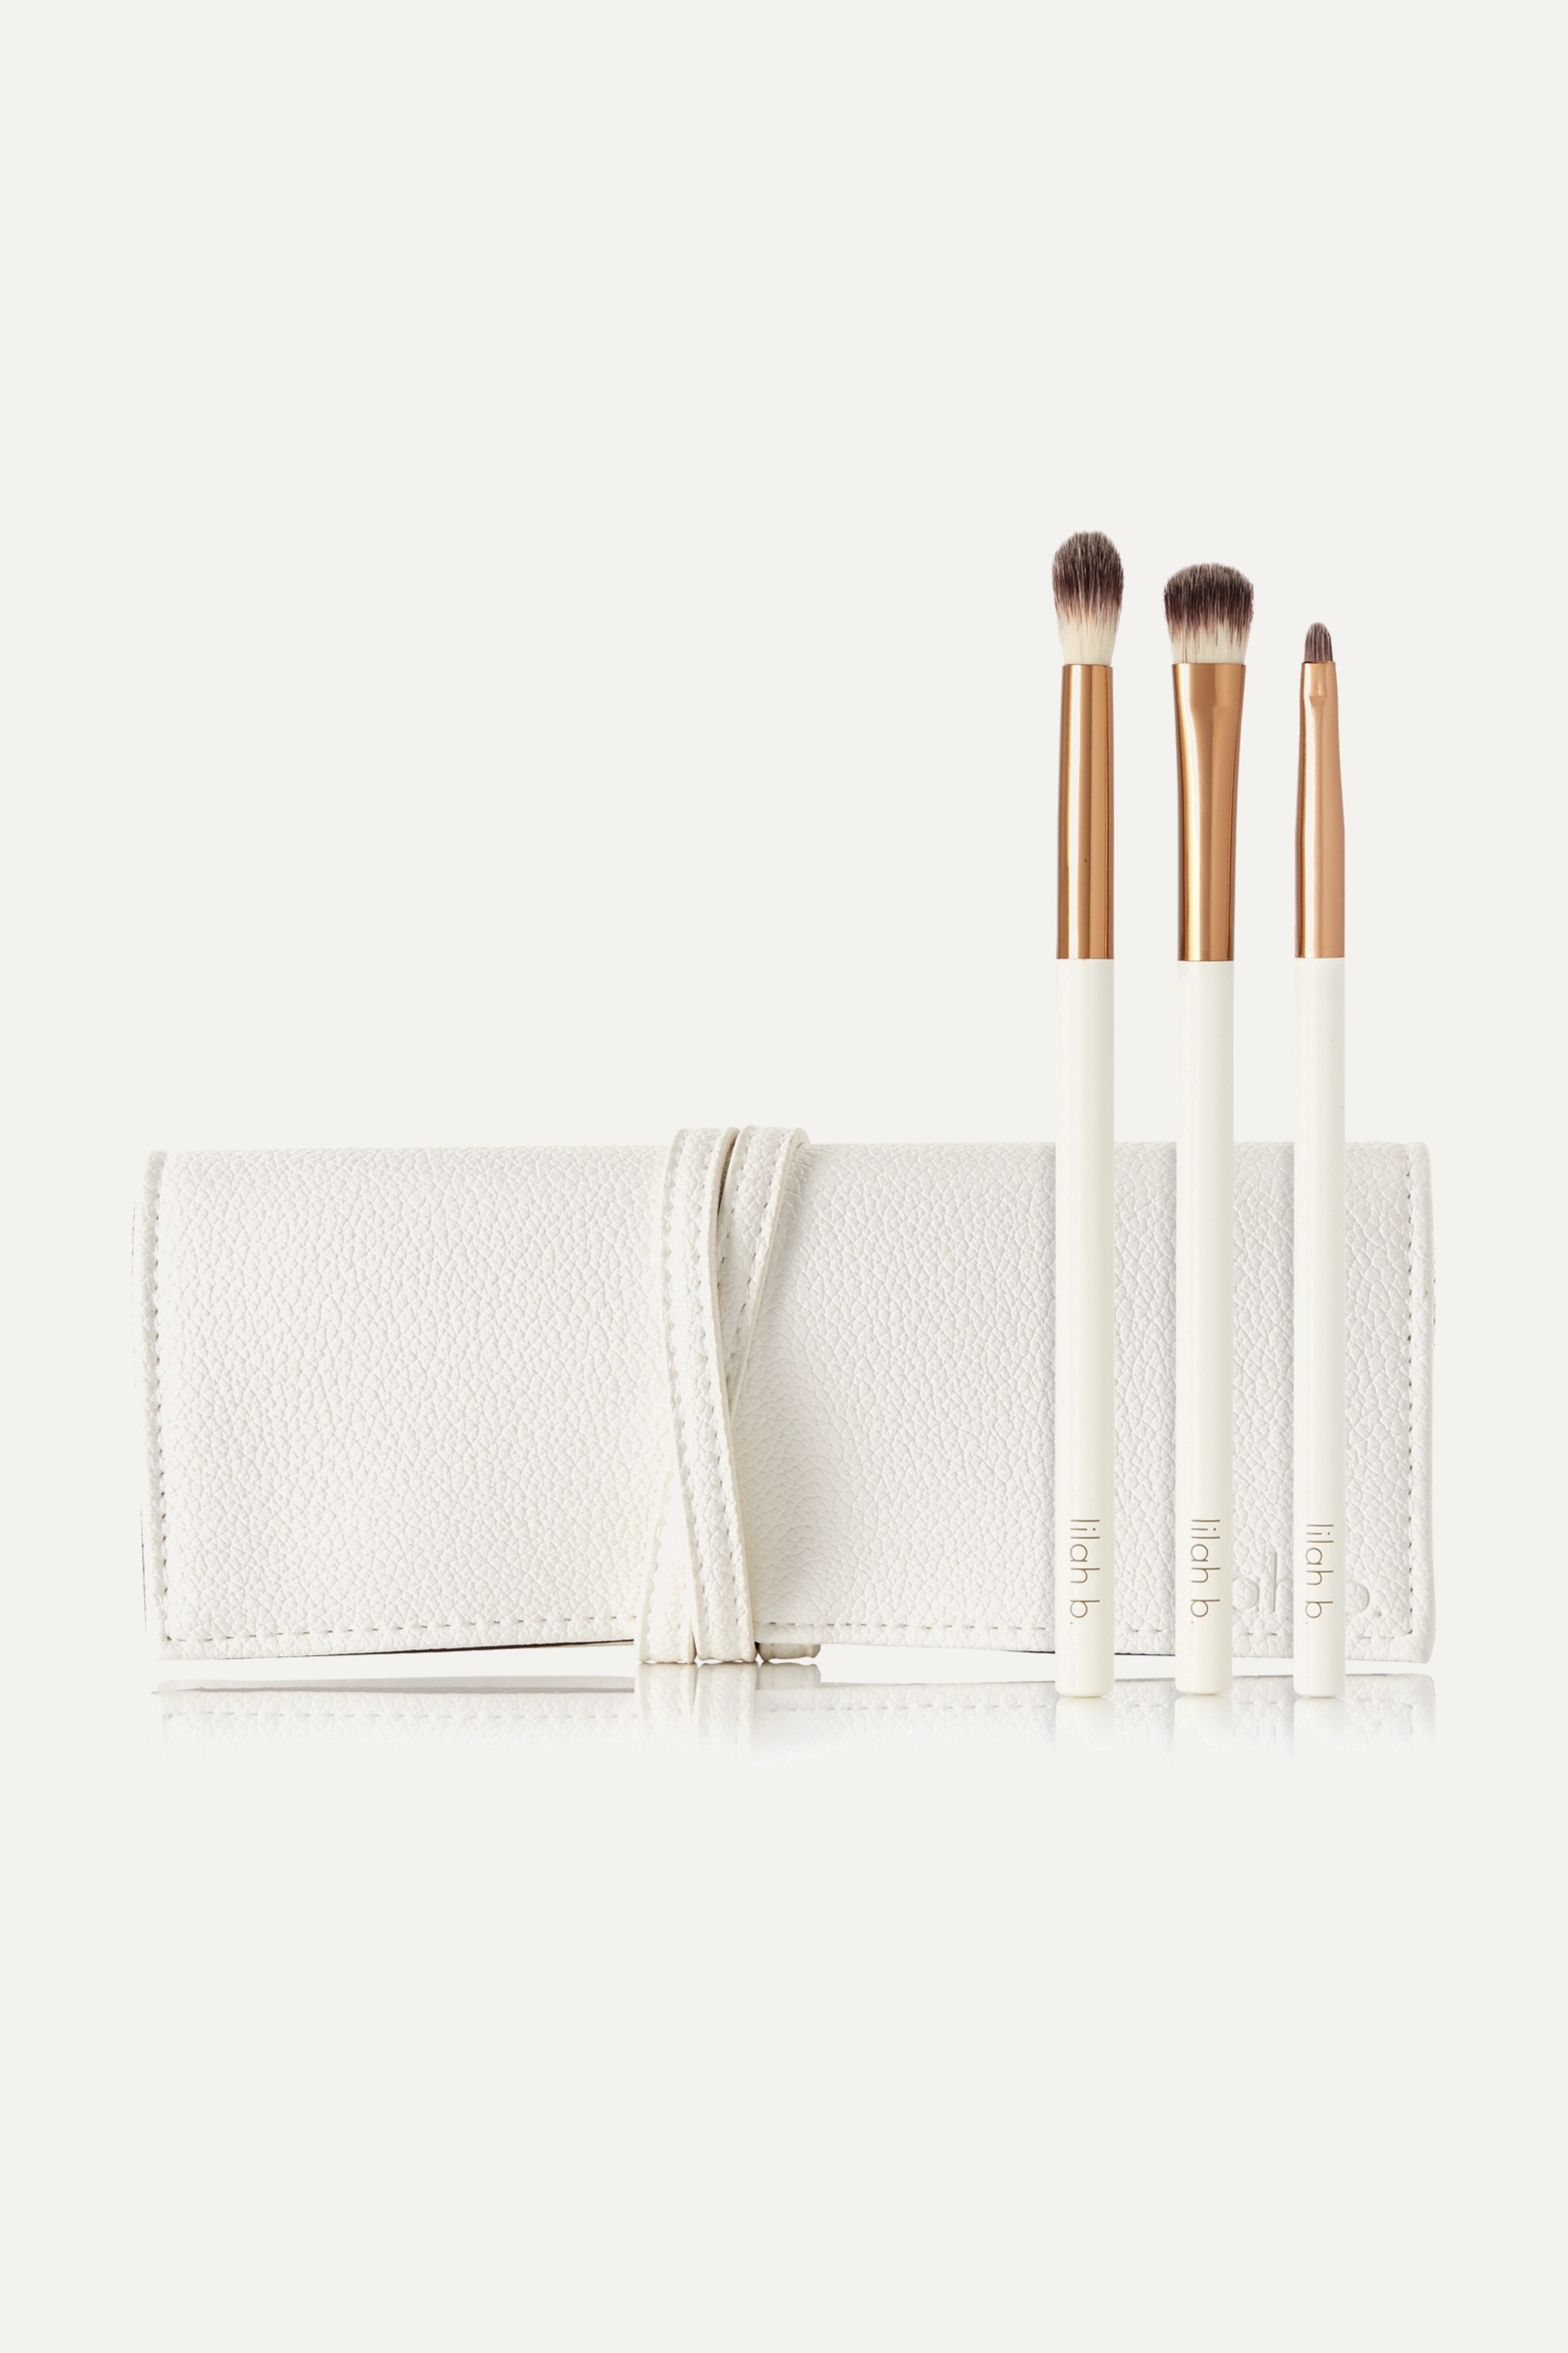 Lilah B. - For Your Eyes Only Brush Set